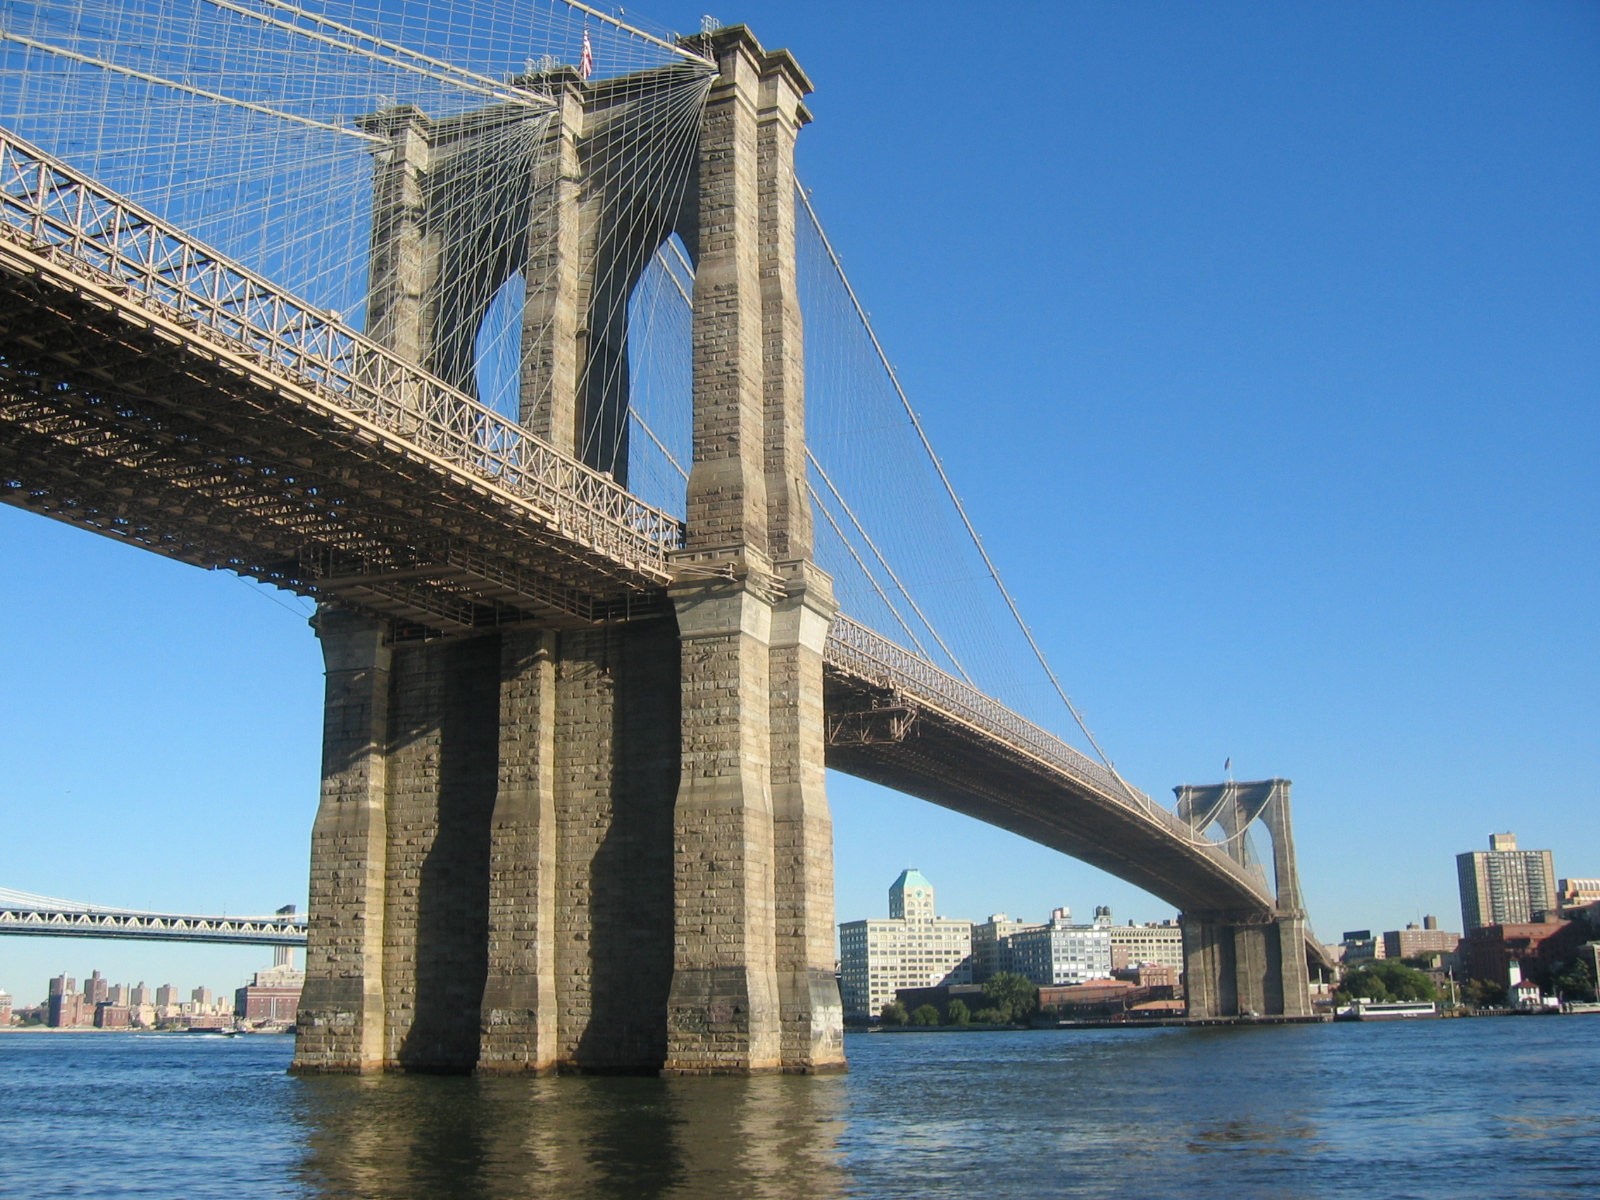 http://2.bp.blogspot.com/-R2No5tJkkbM/TbcE-0o89gI/AAAAAAAAHtk/QSqZ_k8GqZ4/s1600/brooklyn_bridge_-_new_york_city.jpg